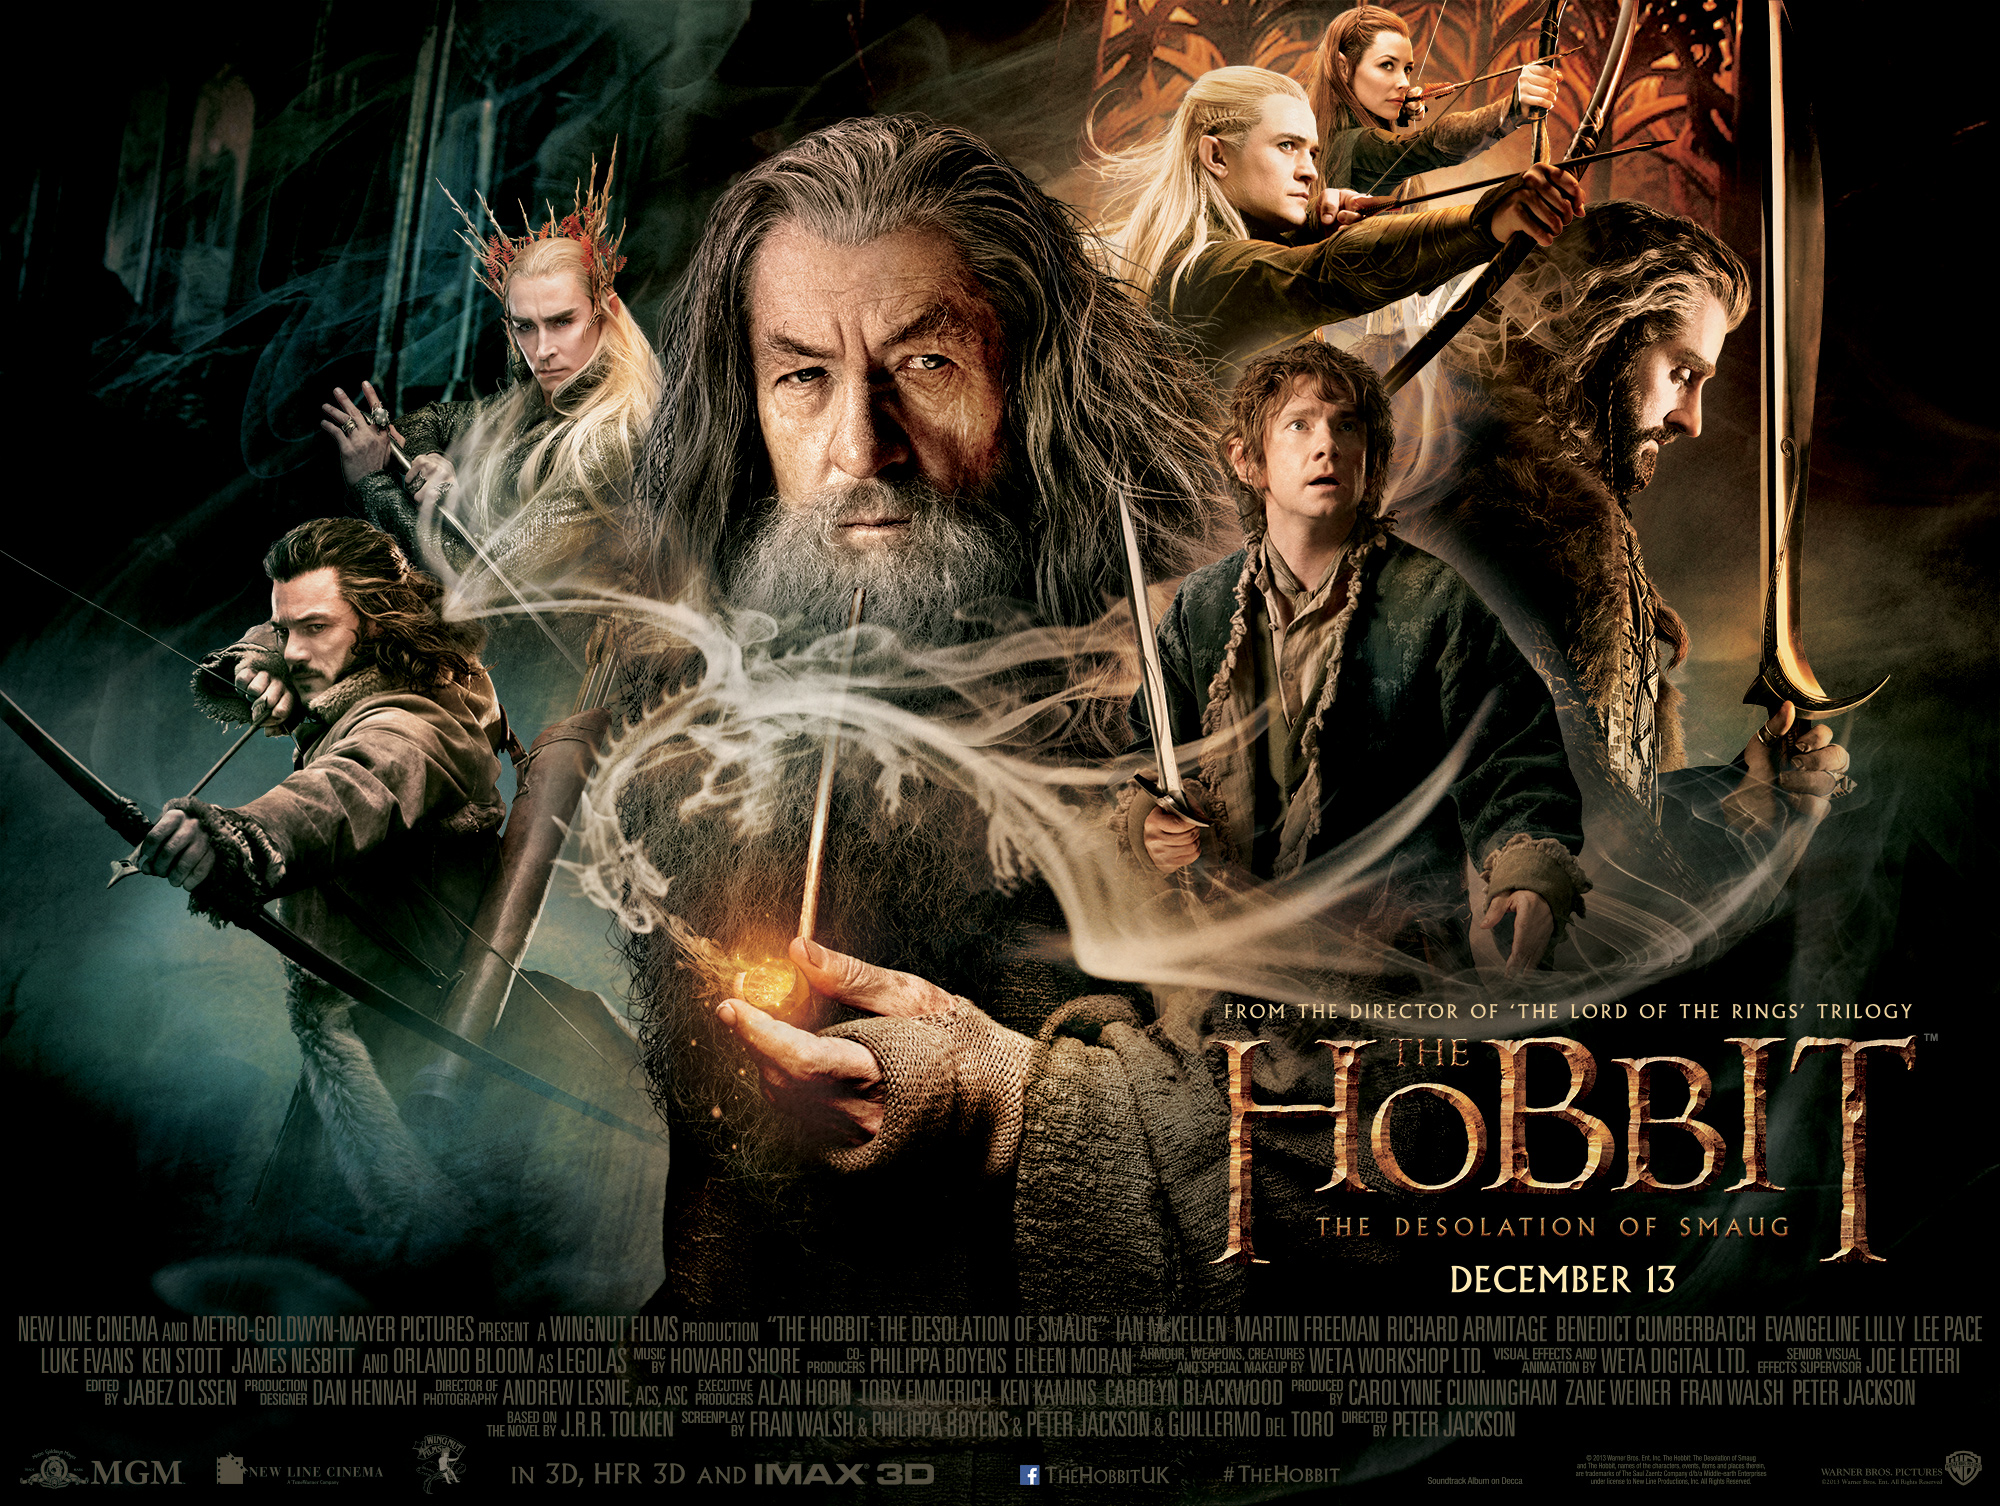 Hobbit 2 full movie in hindi dubbed / Shom uncle episode 1